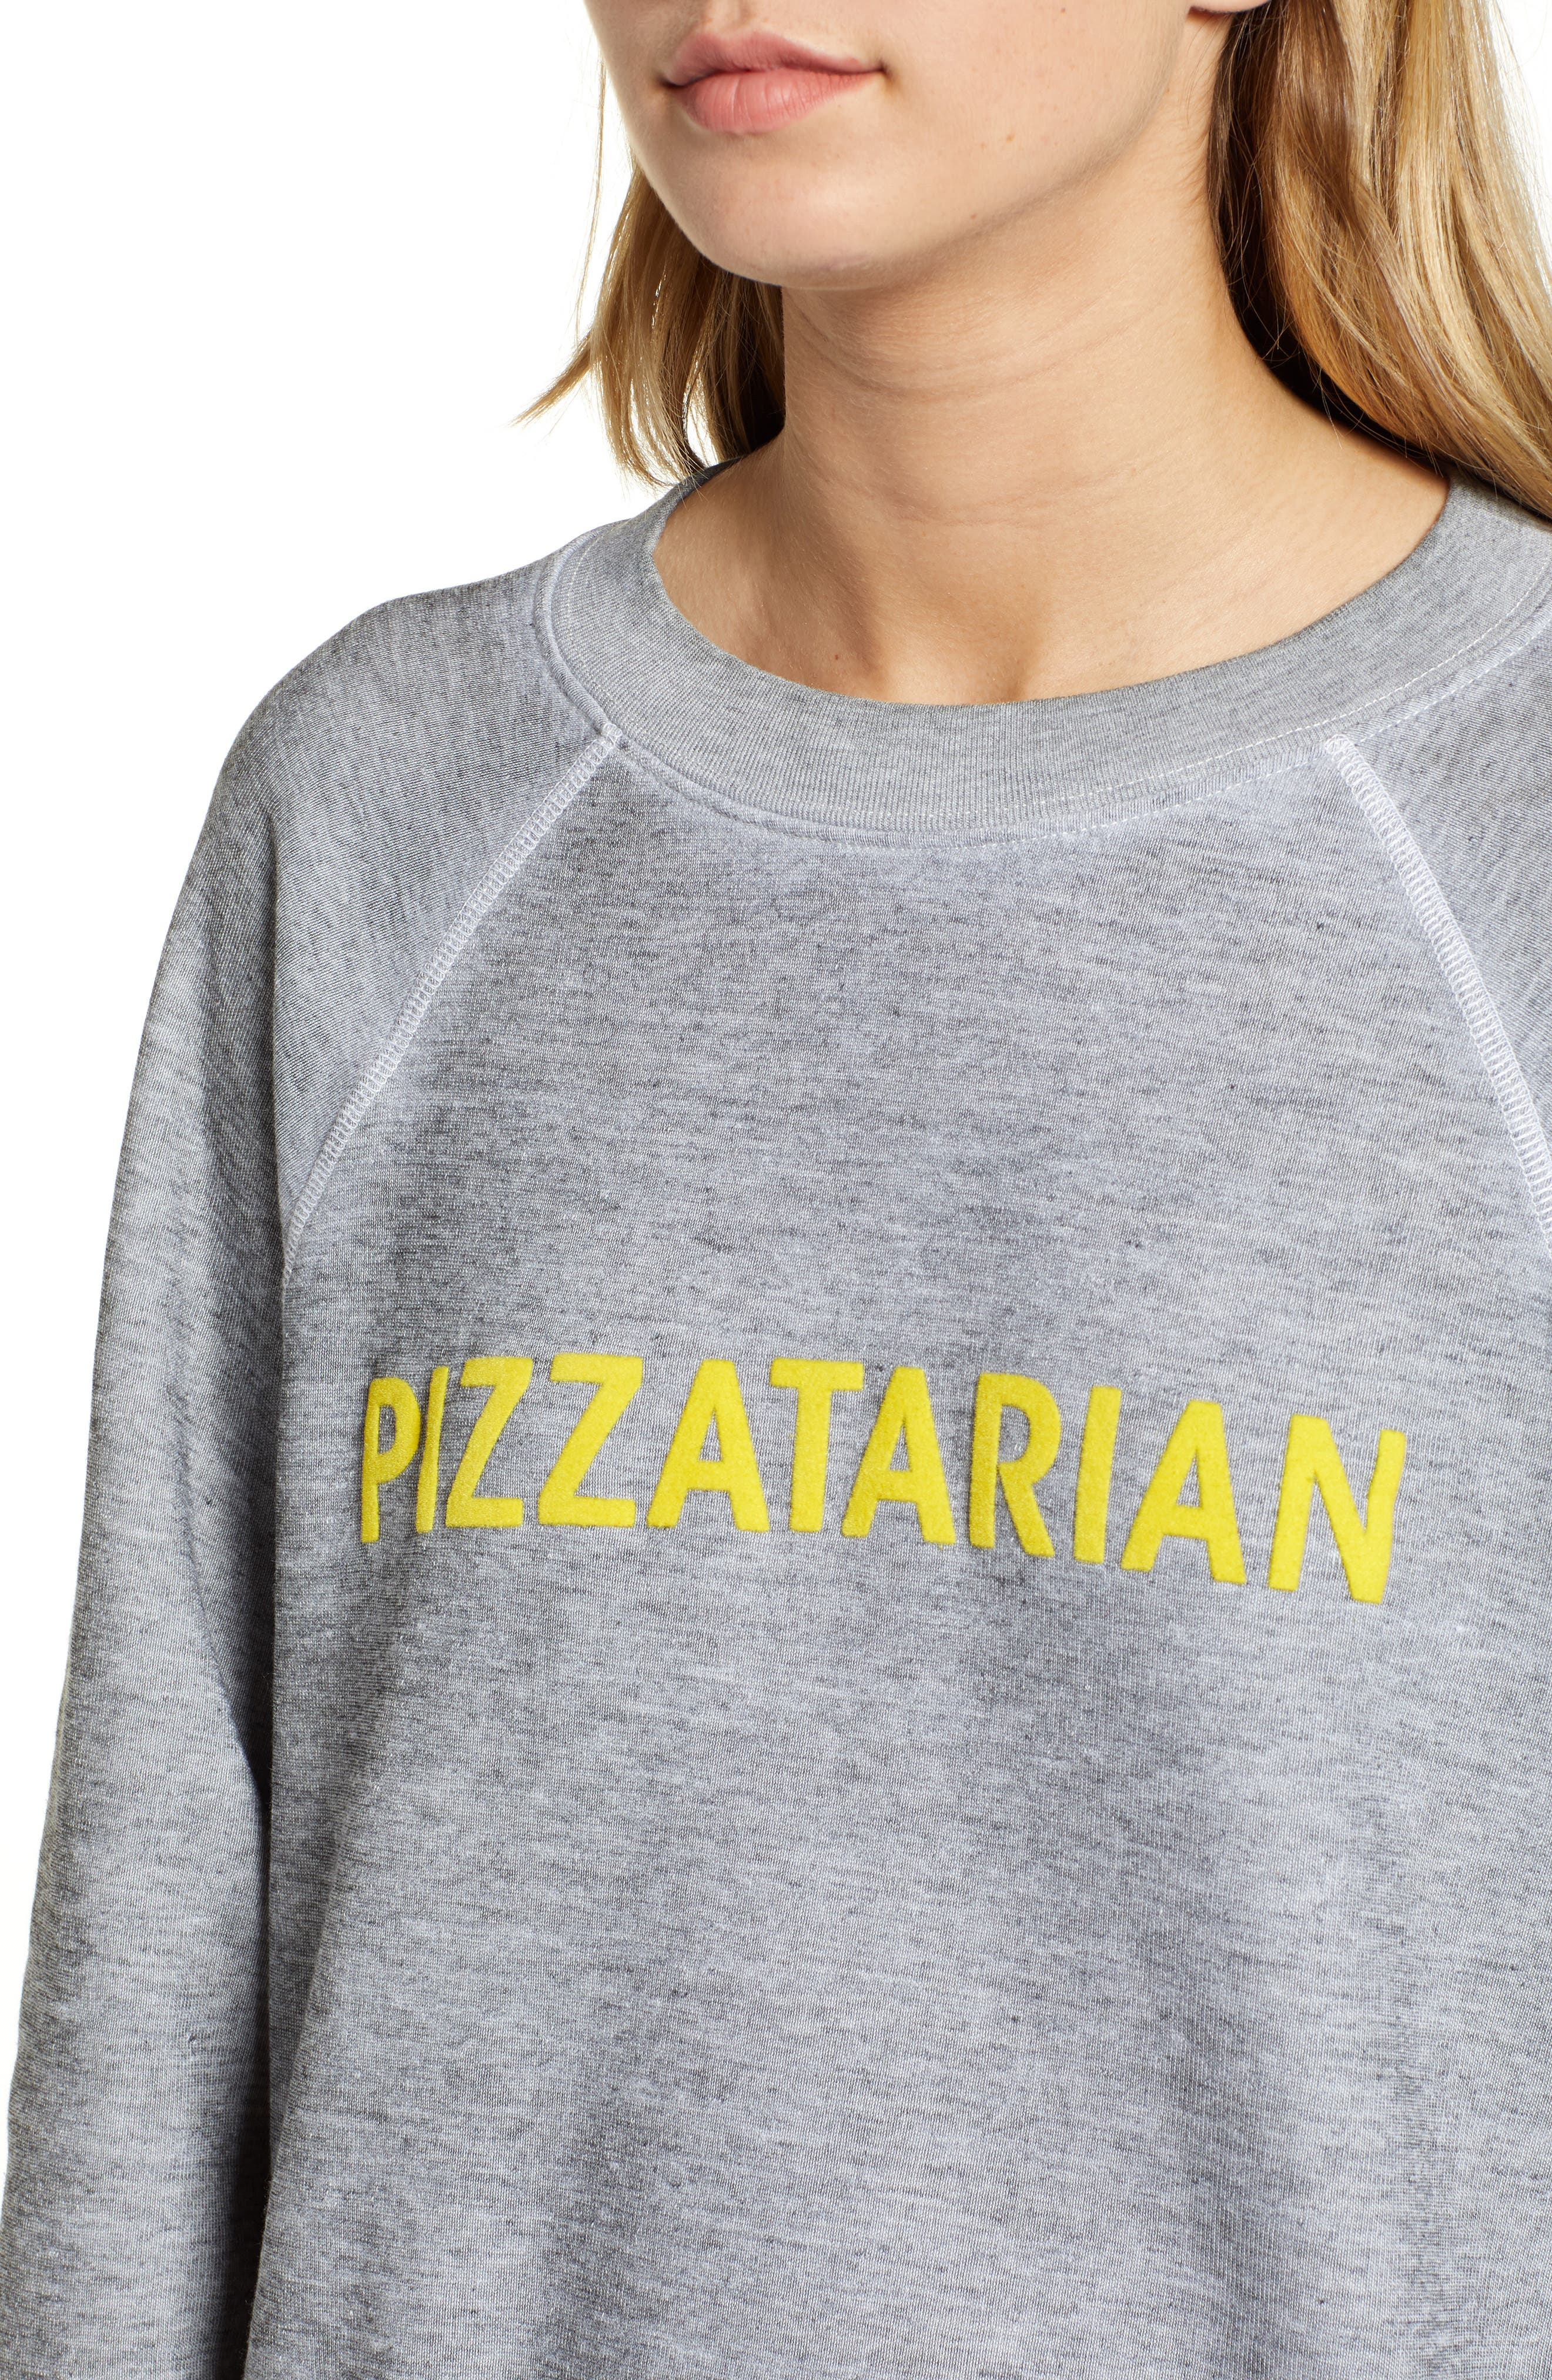 Pizzatarian Sommers Sweatshirt,                             Alternate thumbnail 4, color,                             020